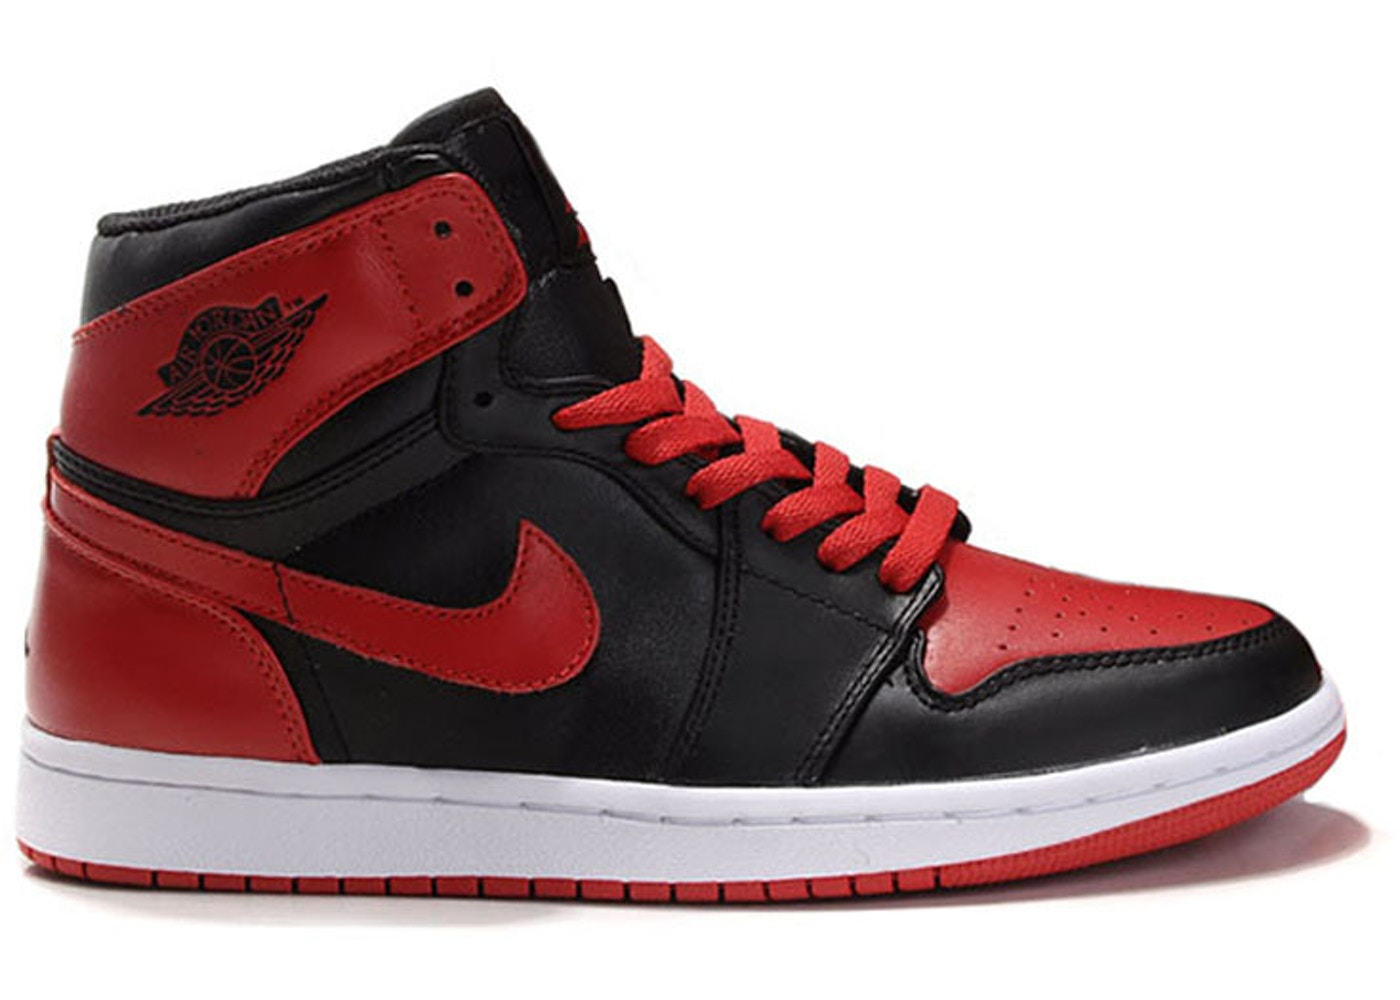 reputable site e9775 db4ec Jordan 1 Retro Chicago Bulls (2009)